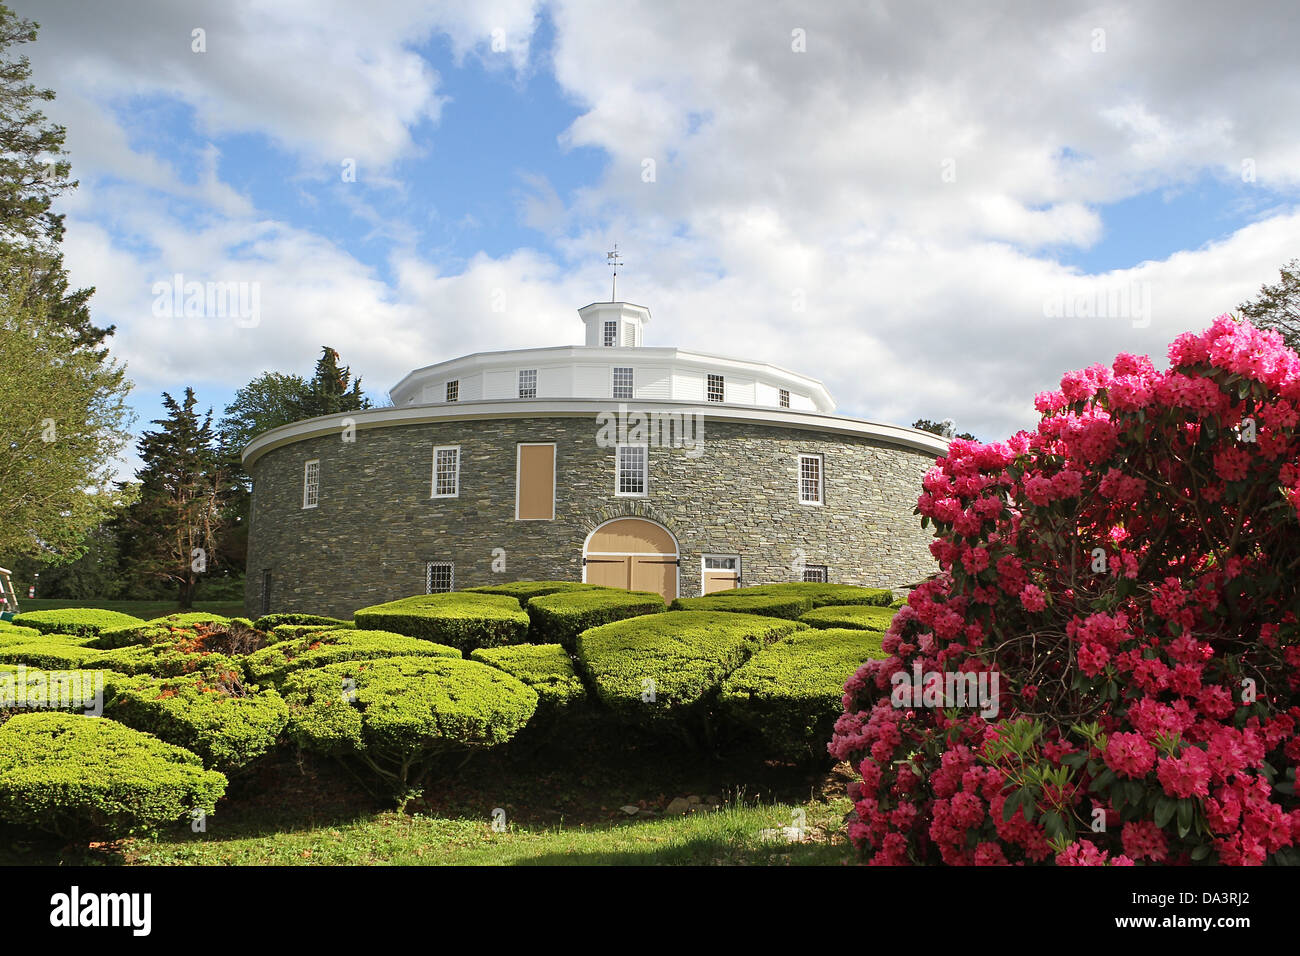 The Round Barn At Heritage Museum And Gardens In Sandwich Stock